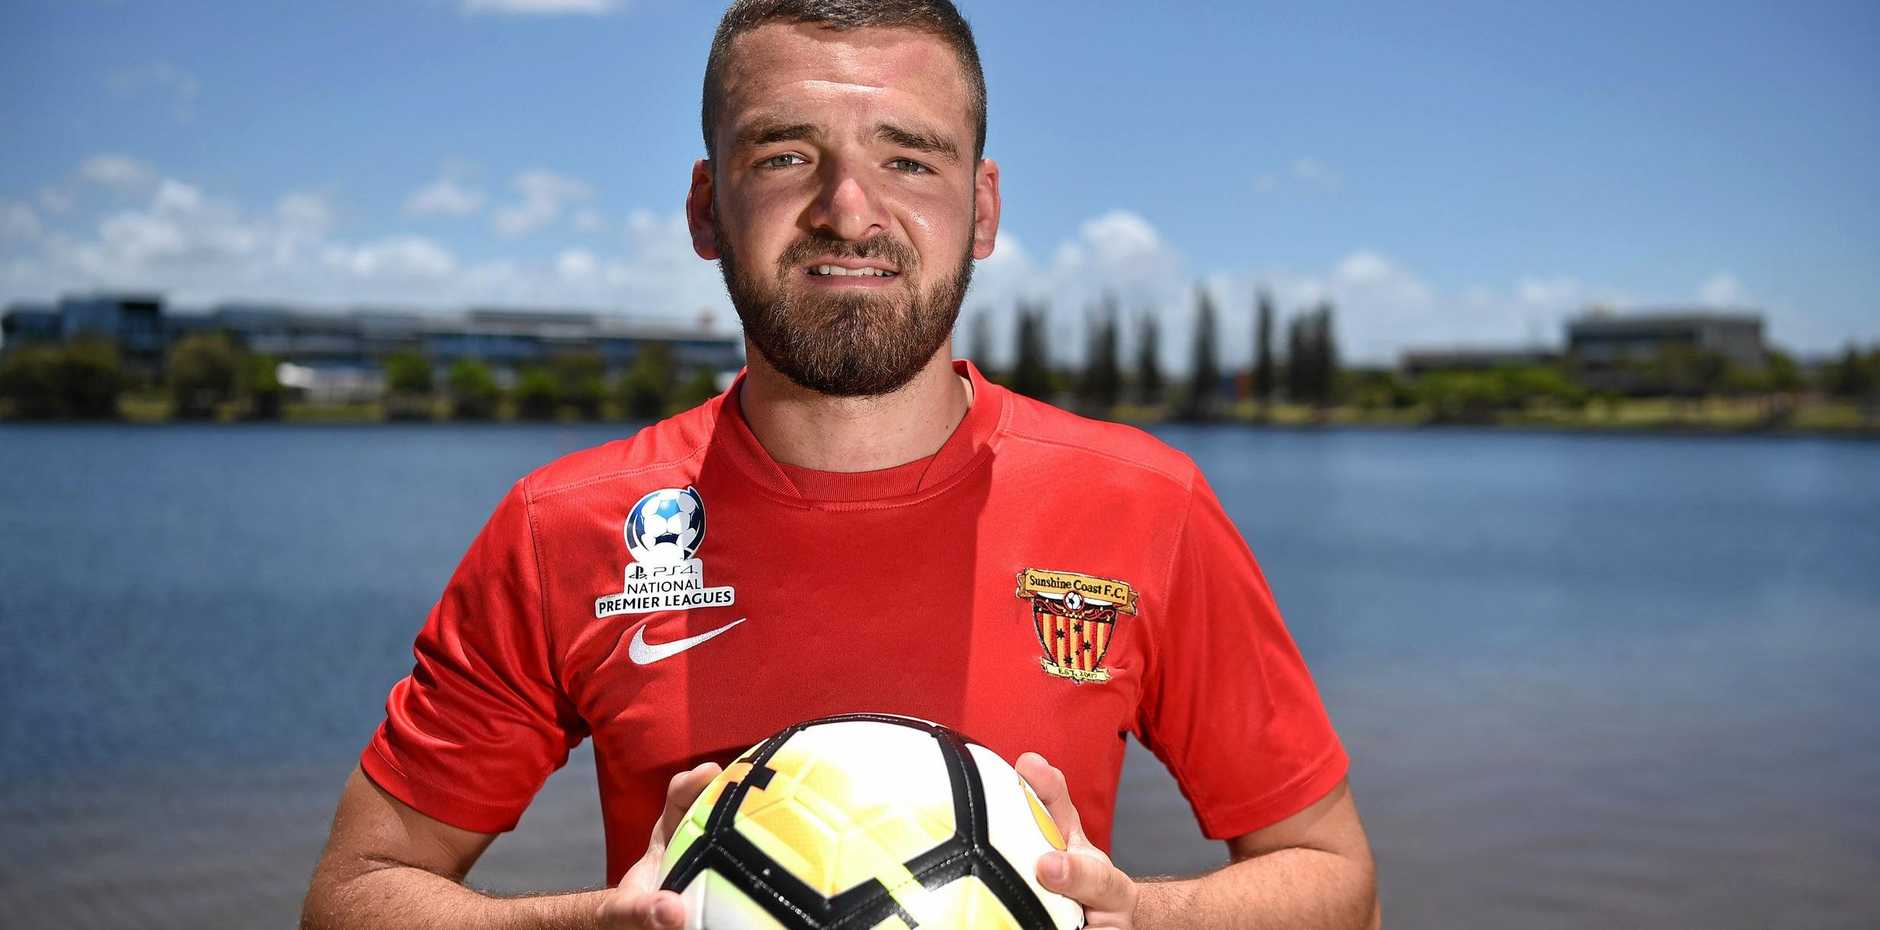 IMPACT MAN: Sunshine Coast Fire's right winger Nico Huet is injury free and ready to make his mark on the National Premier League. The Frenchman was recruited from Brisbane, but played most of his football in his native country.